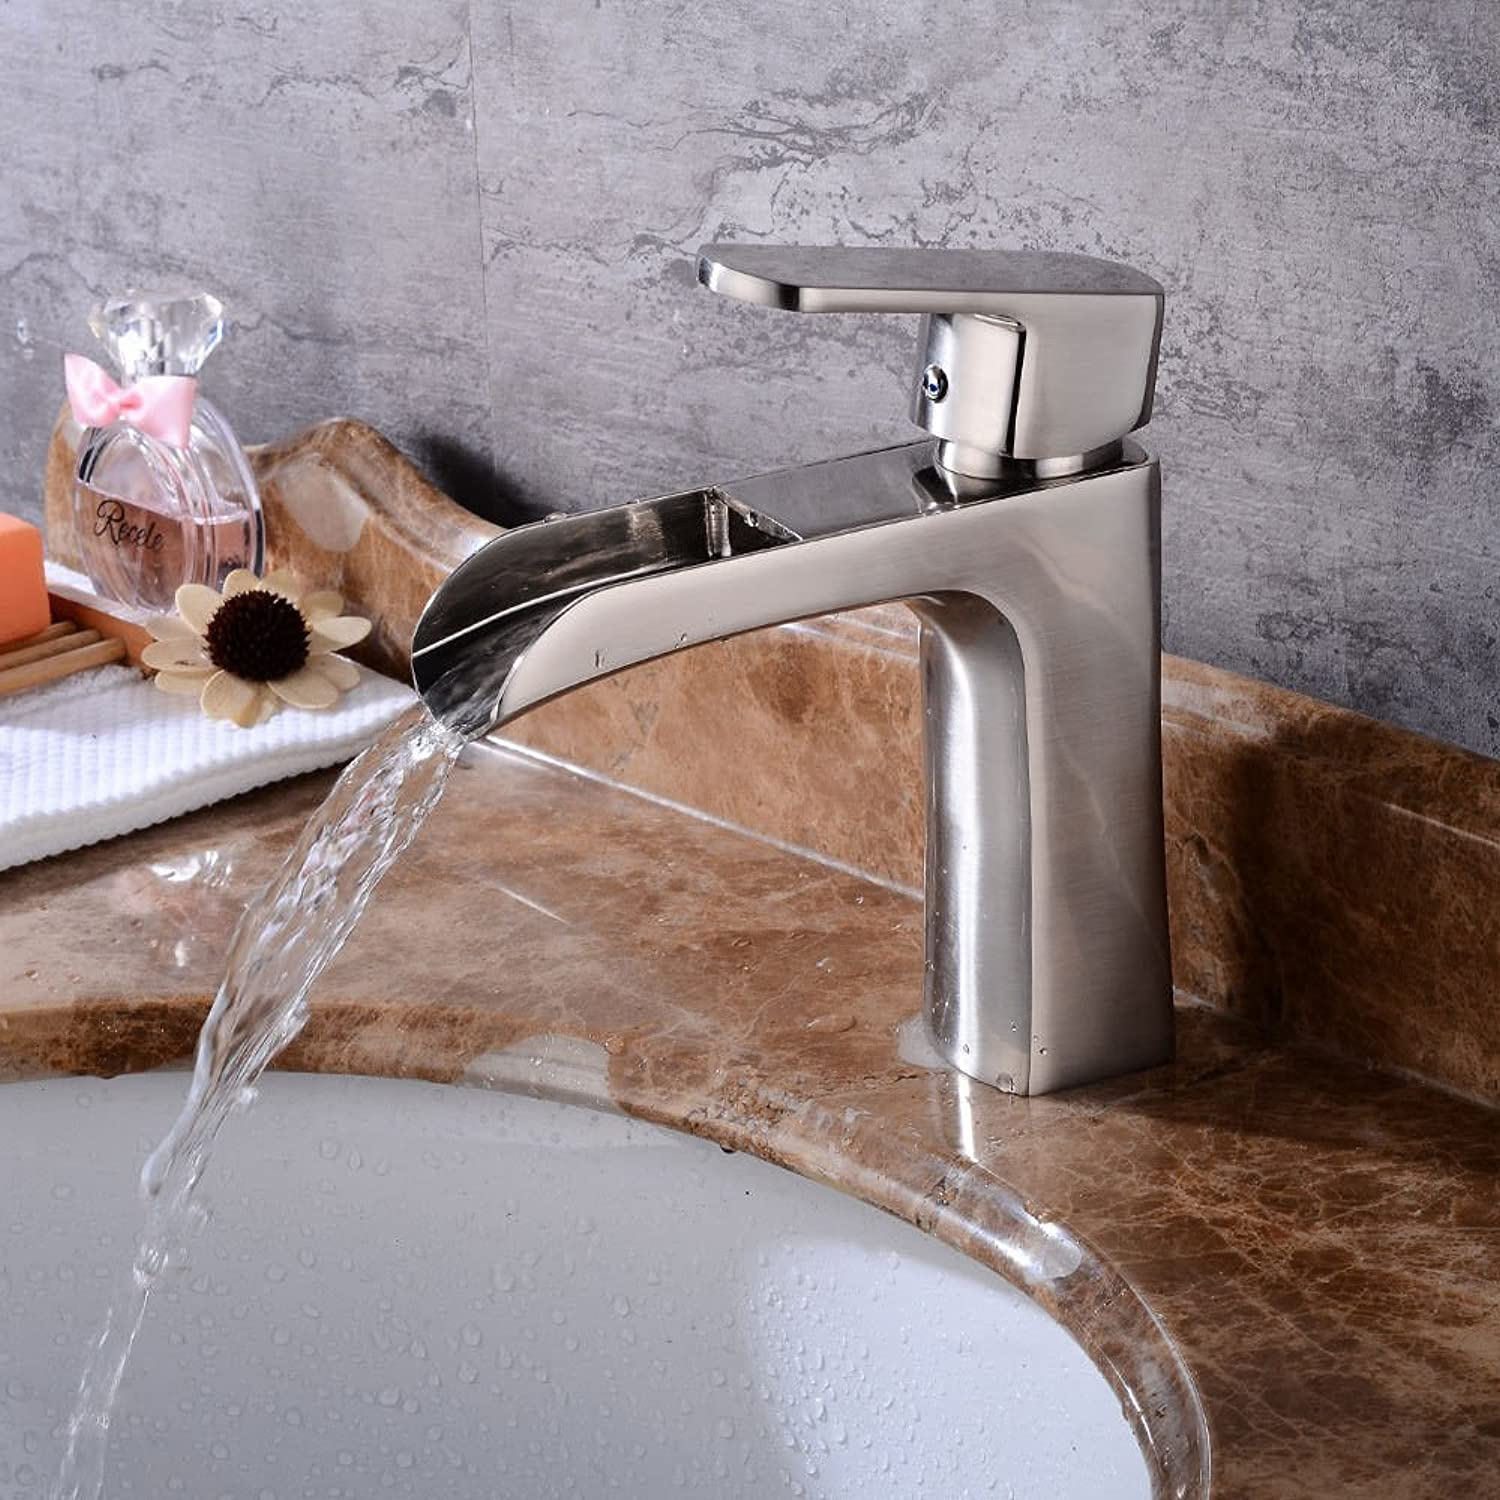 Lalaky Taps Faucet Kitchen Mixer Sink Waterfall Bathroom Mixer Basin Mixer Tap for Kitchen Bathroom and Washroom Brushed Hot and Cold Retro Waterfall Single Hole